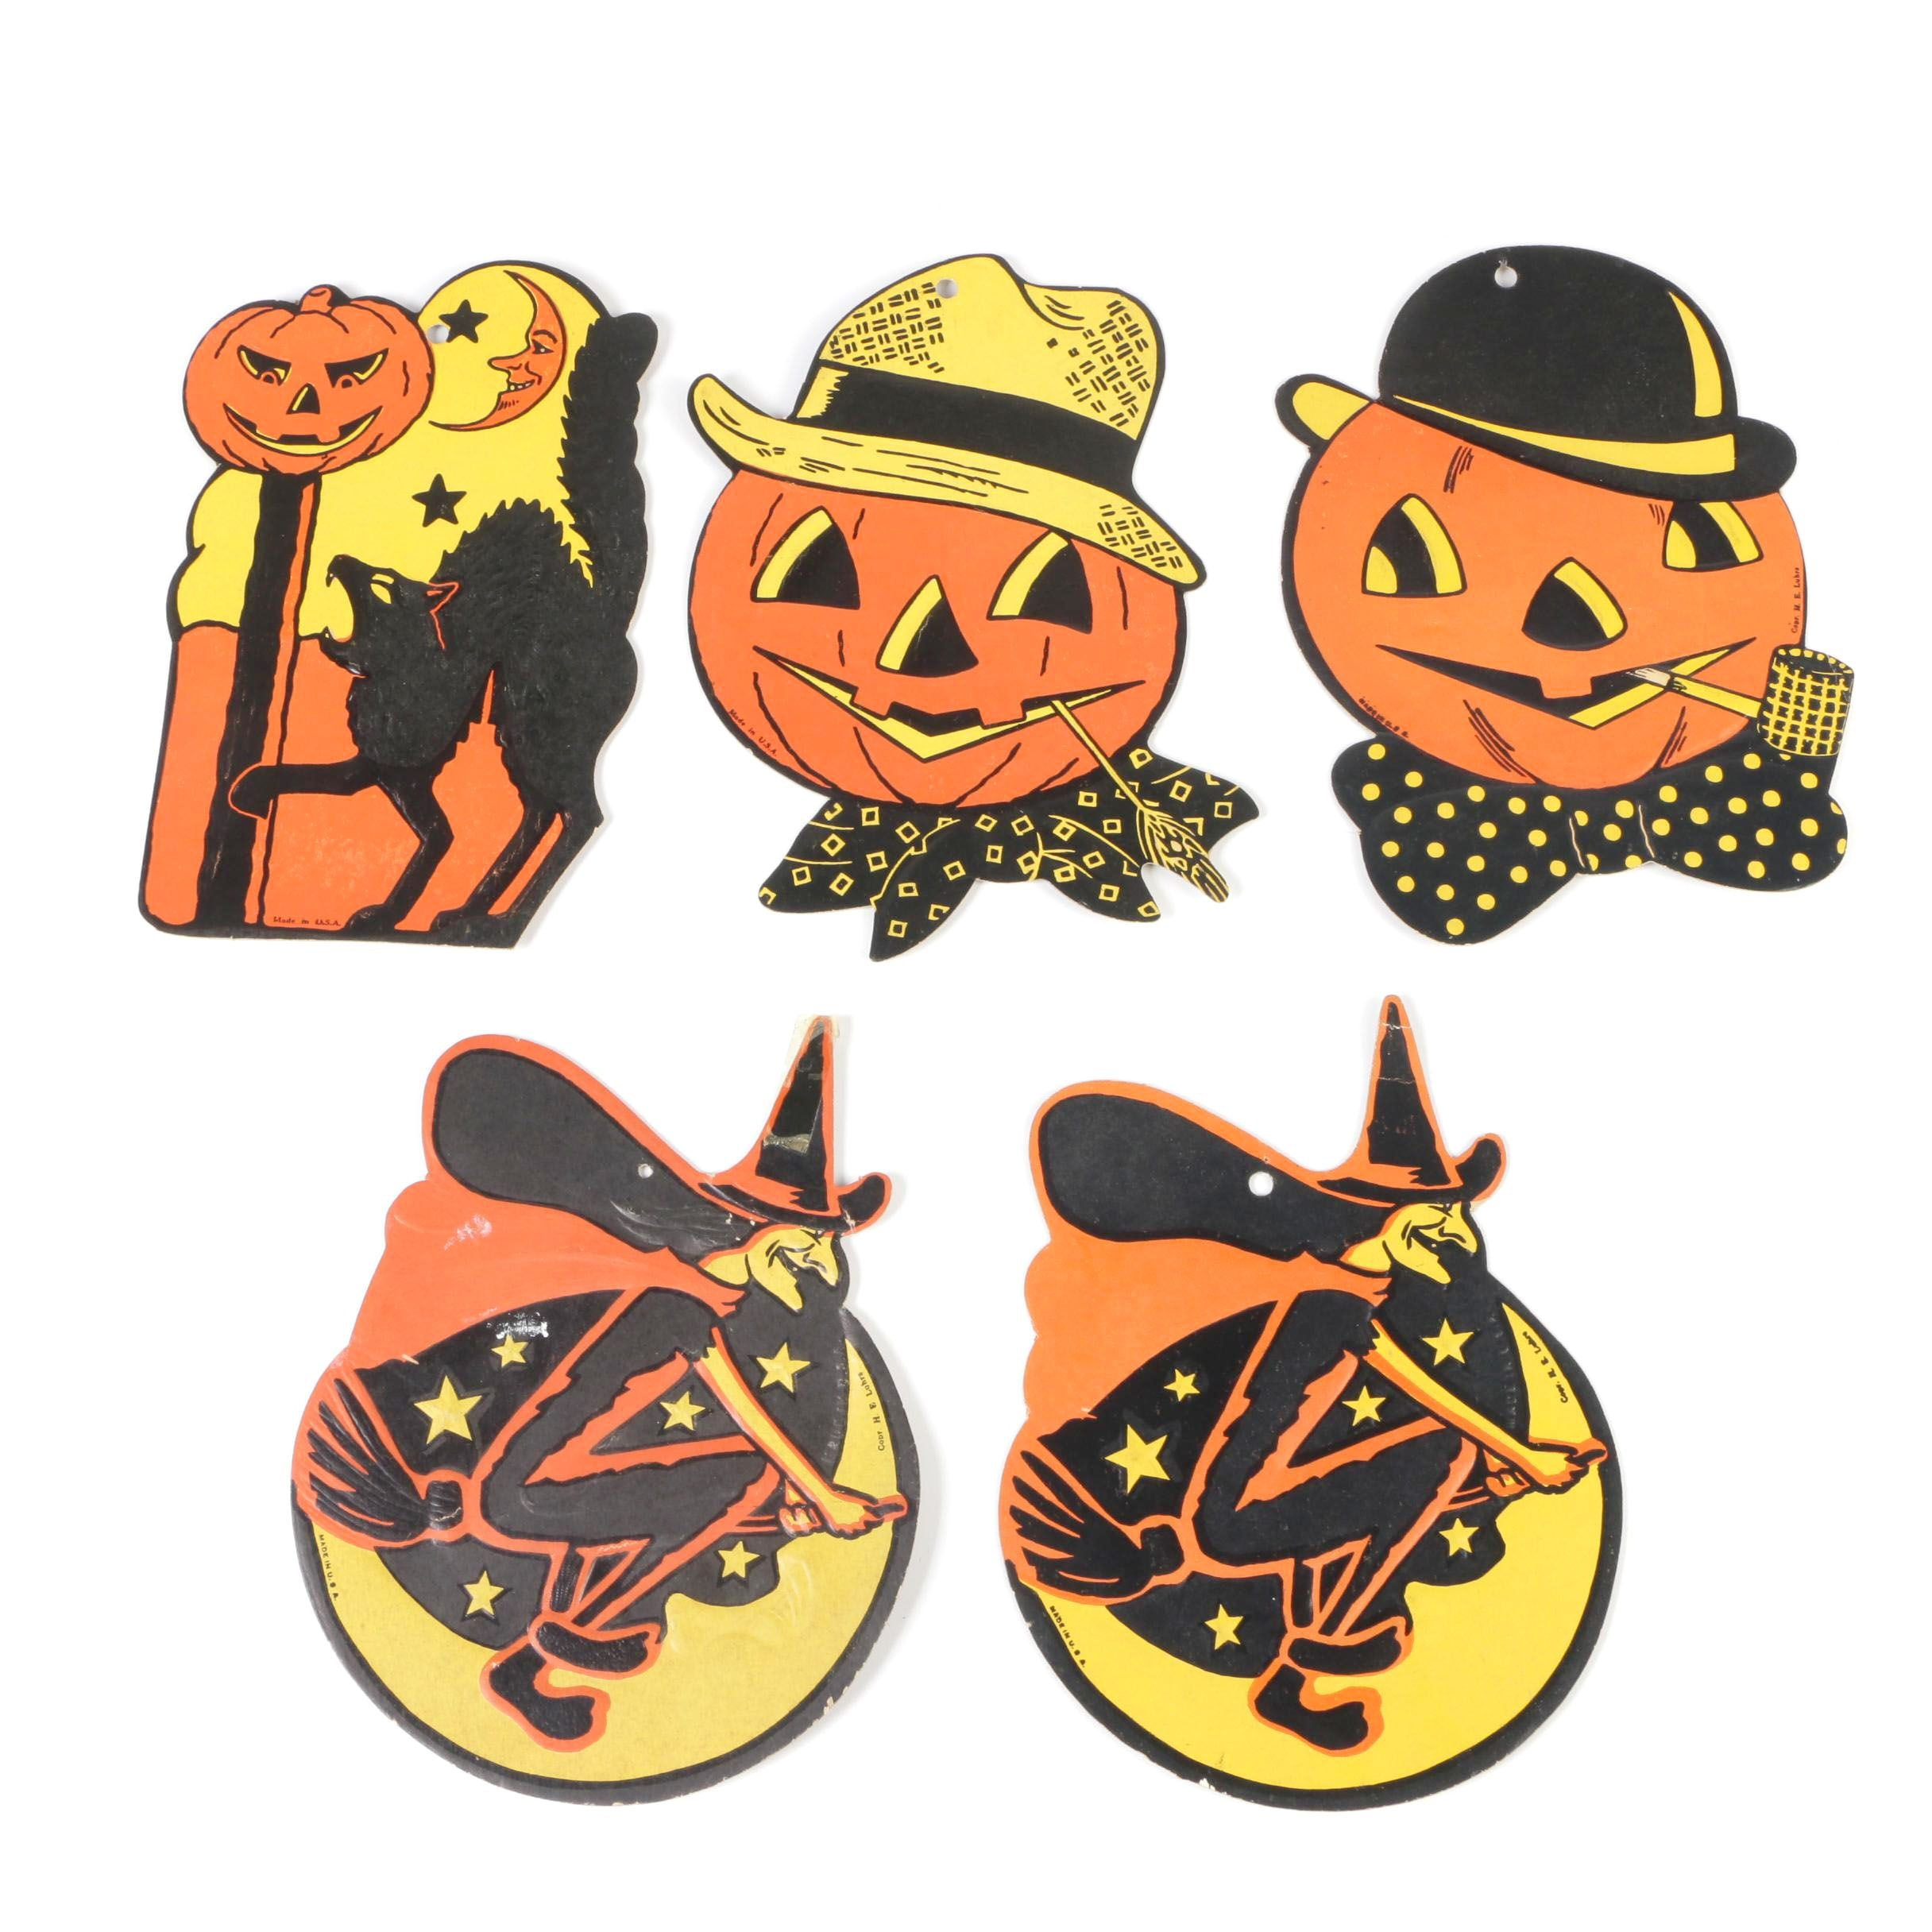 H. E. Luhrs Pressed Cardboard Halloween Wall Decorations, Mid-Century